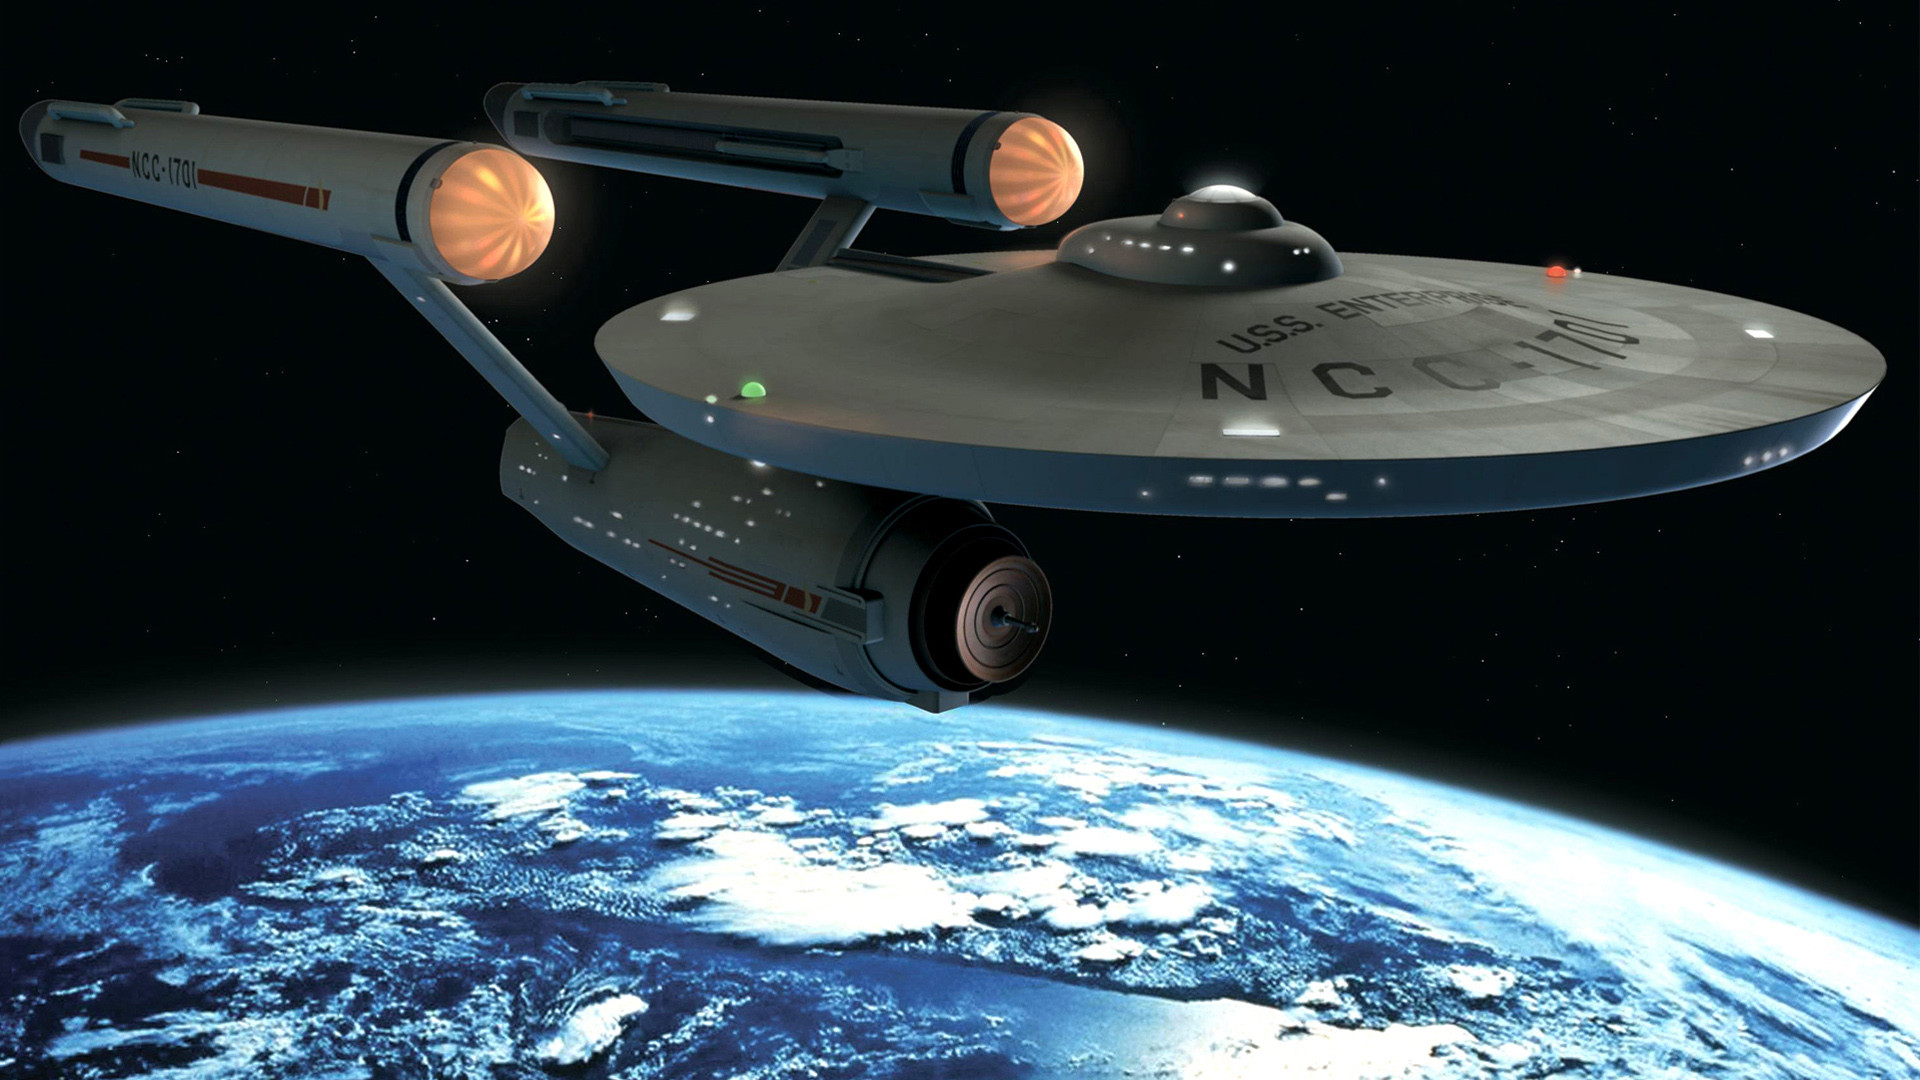 Res: 1920x1080, Video Game - Star Trek: Starfleet Academy - Starship Bridge Simulator  Wallpaper